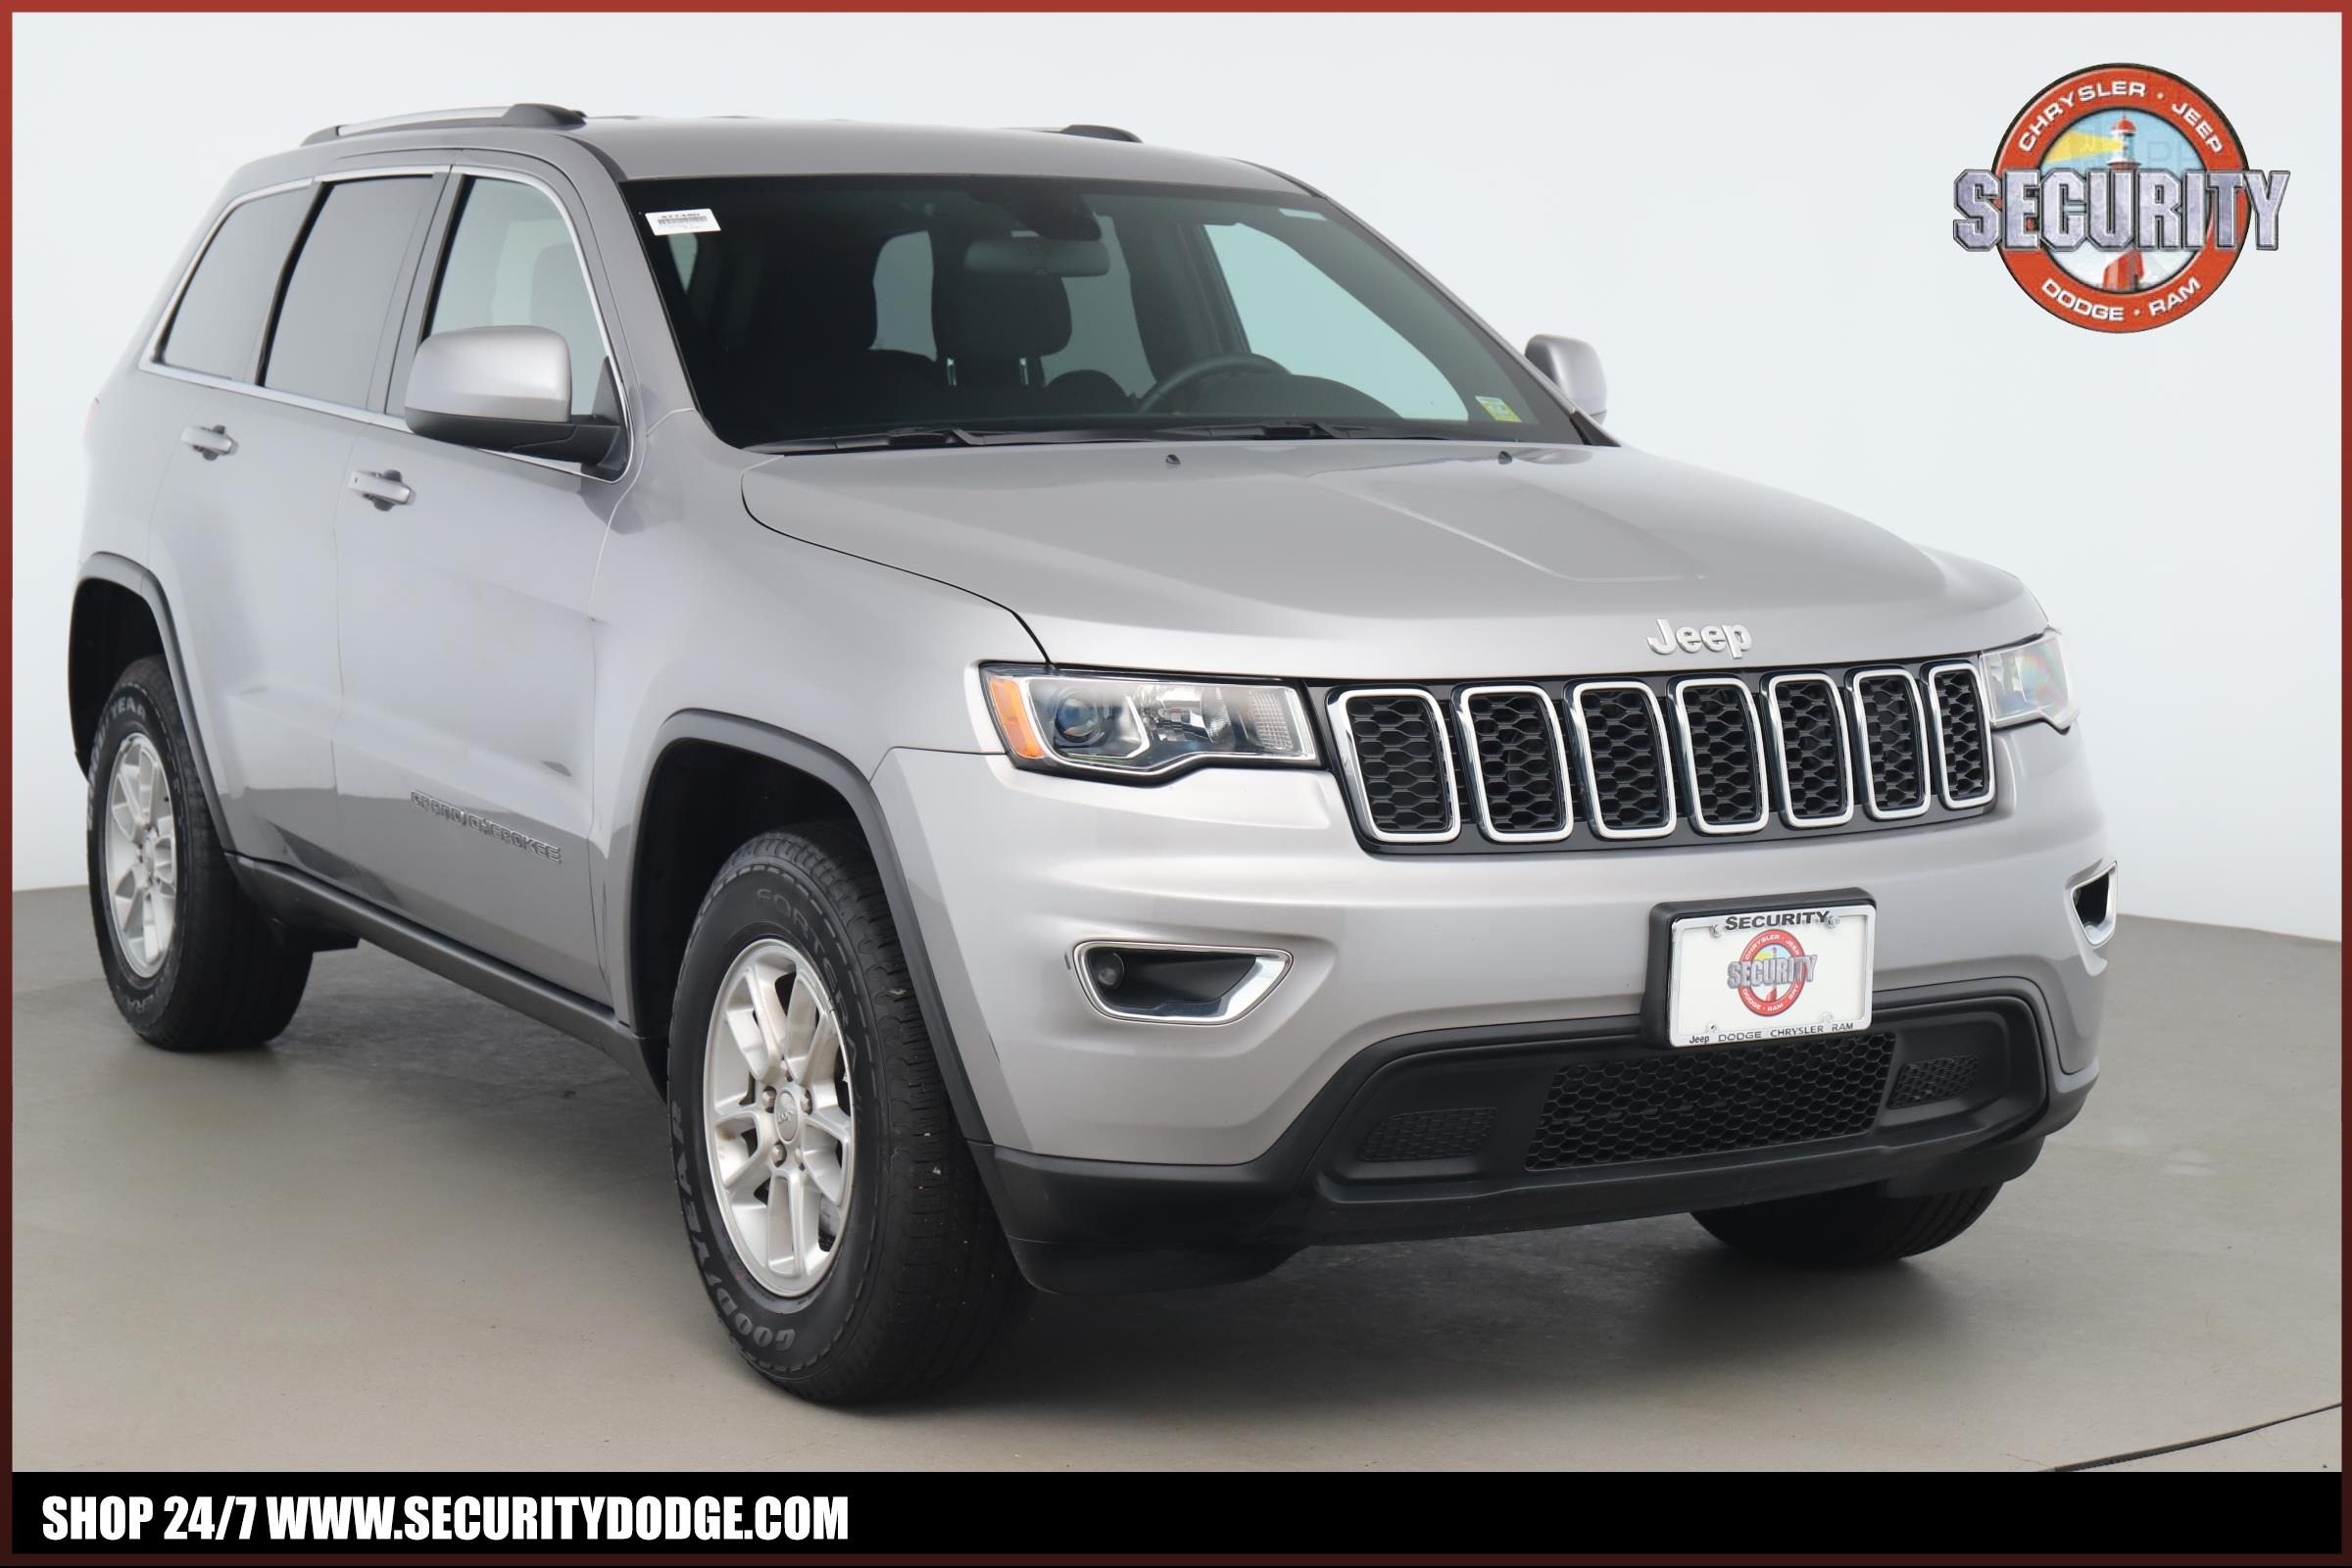 Certified Pre-Owned 2018 Jeep Grand Cherokee Laredo E 4x4